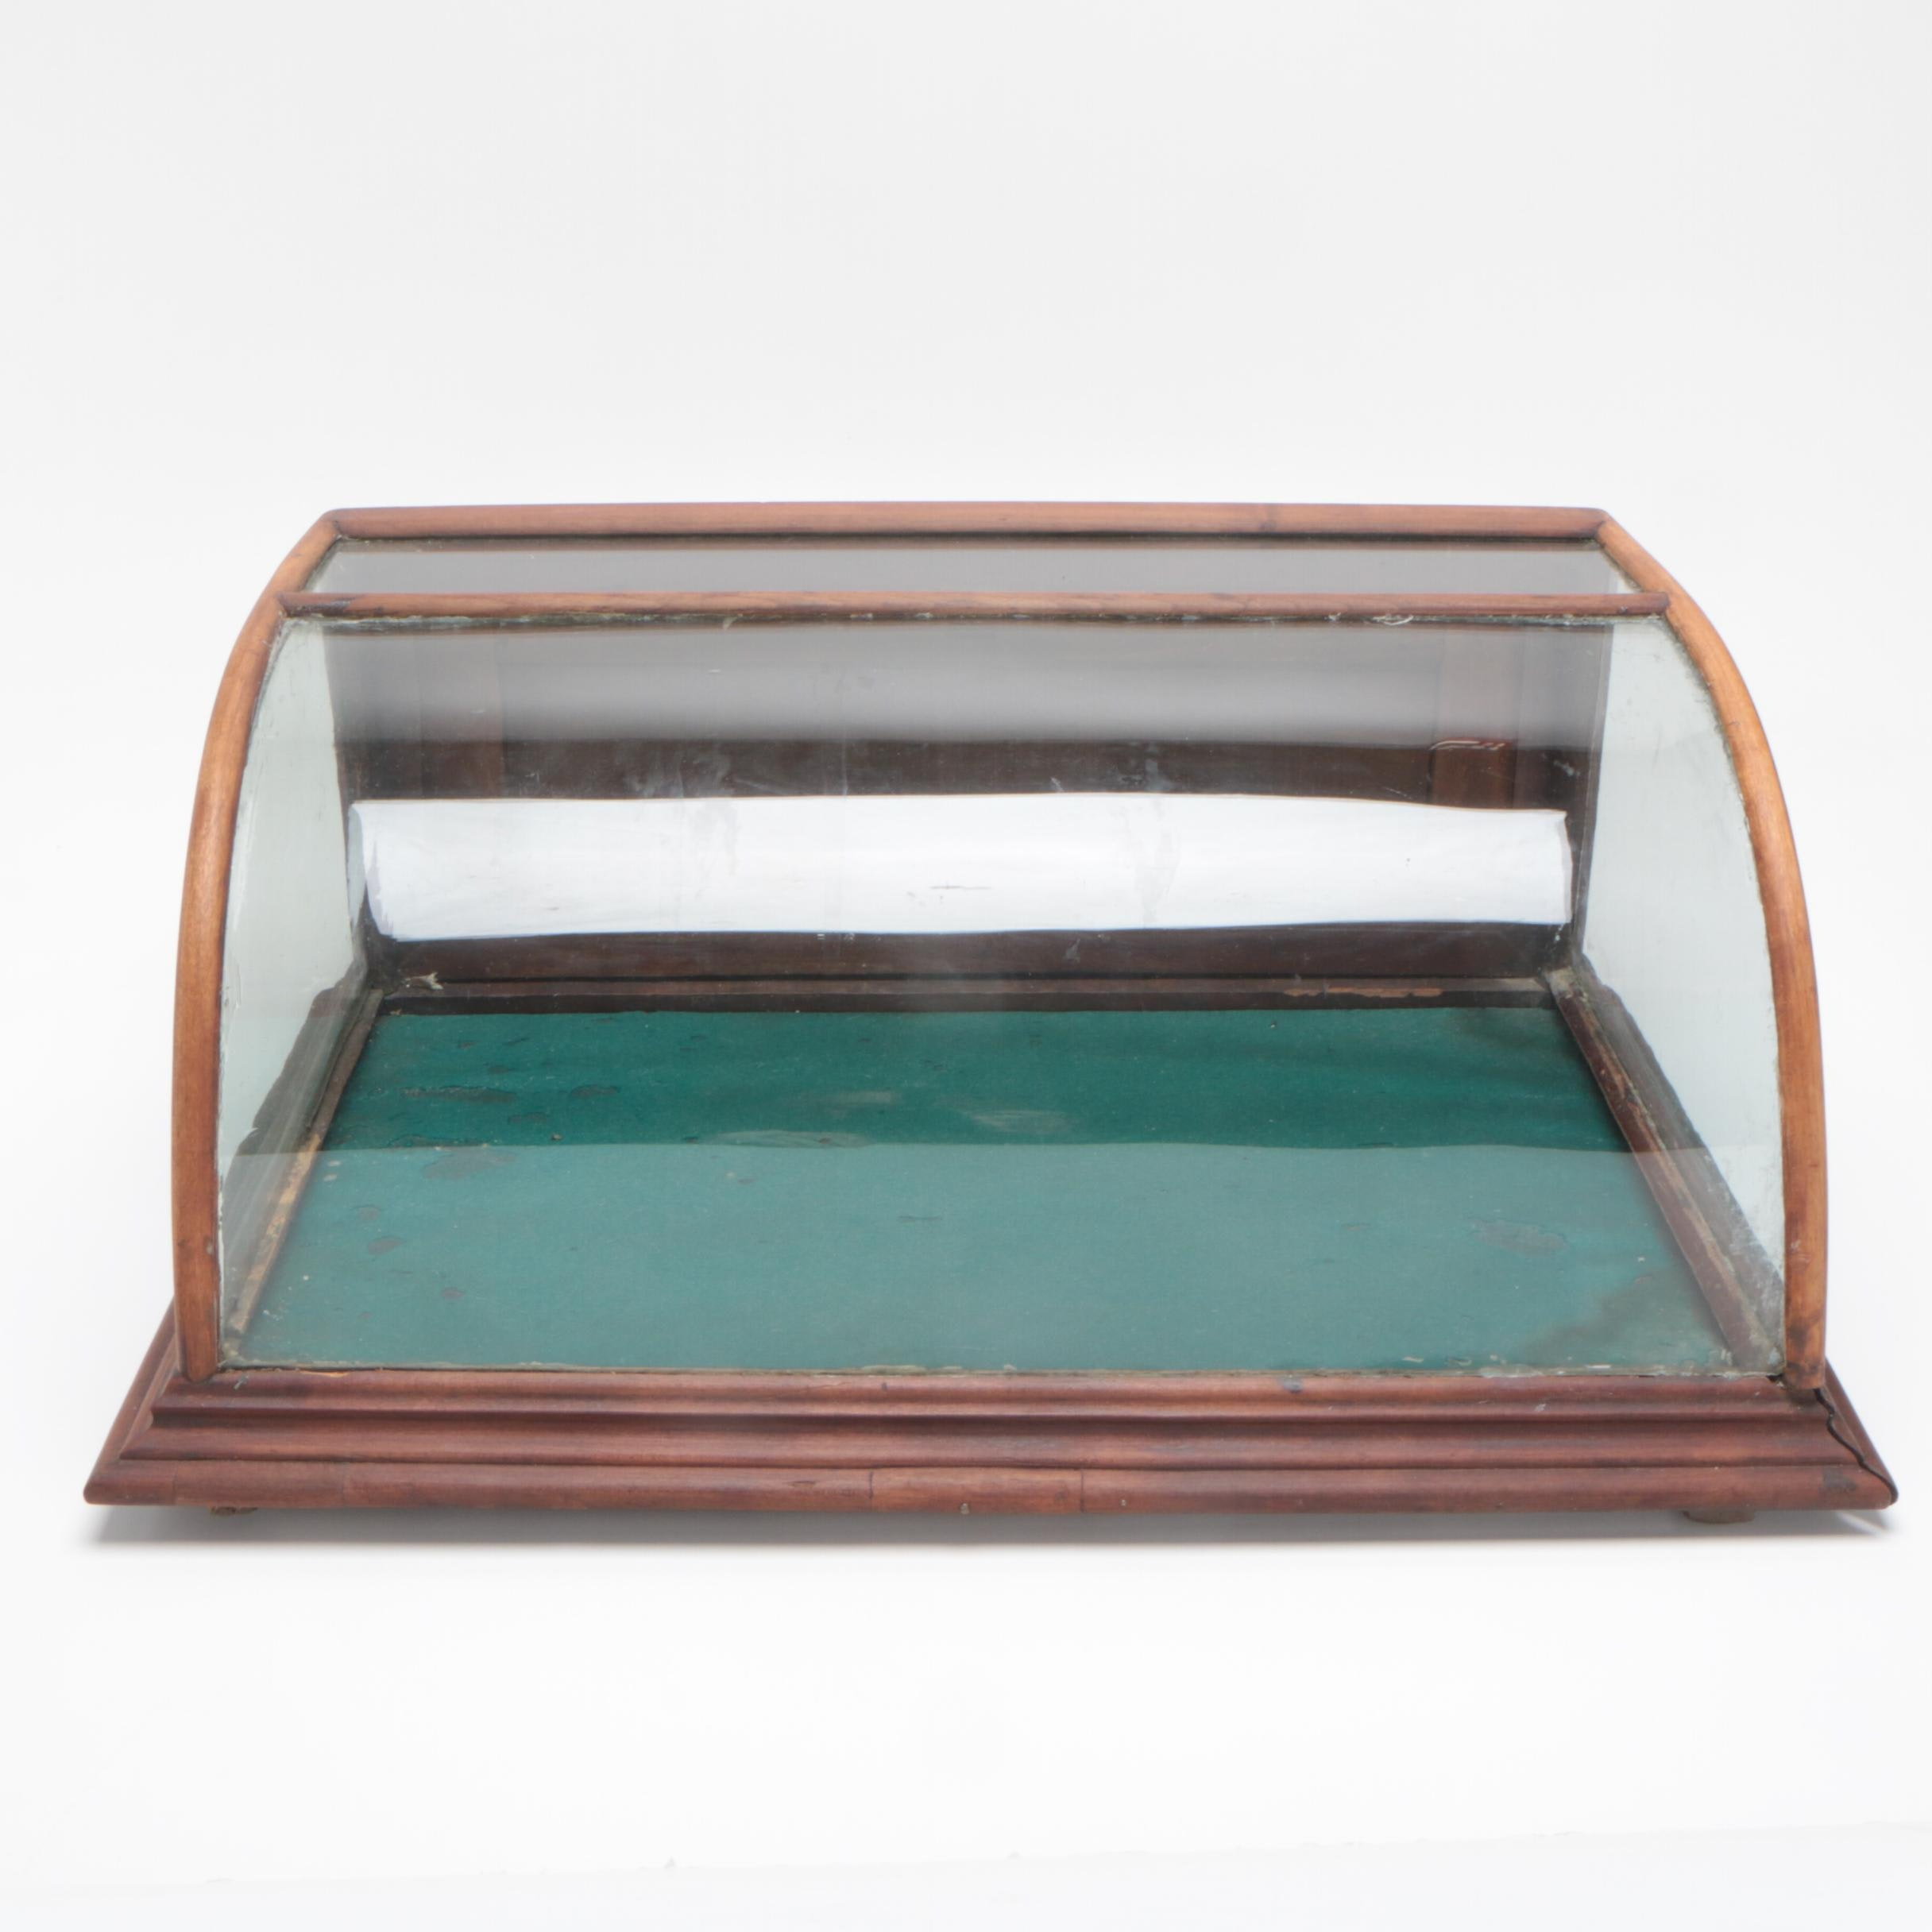 Counter Display Case with Curved Glass Front, 1920s